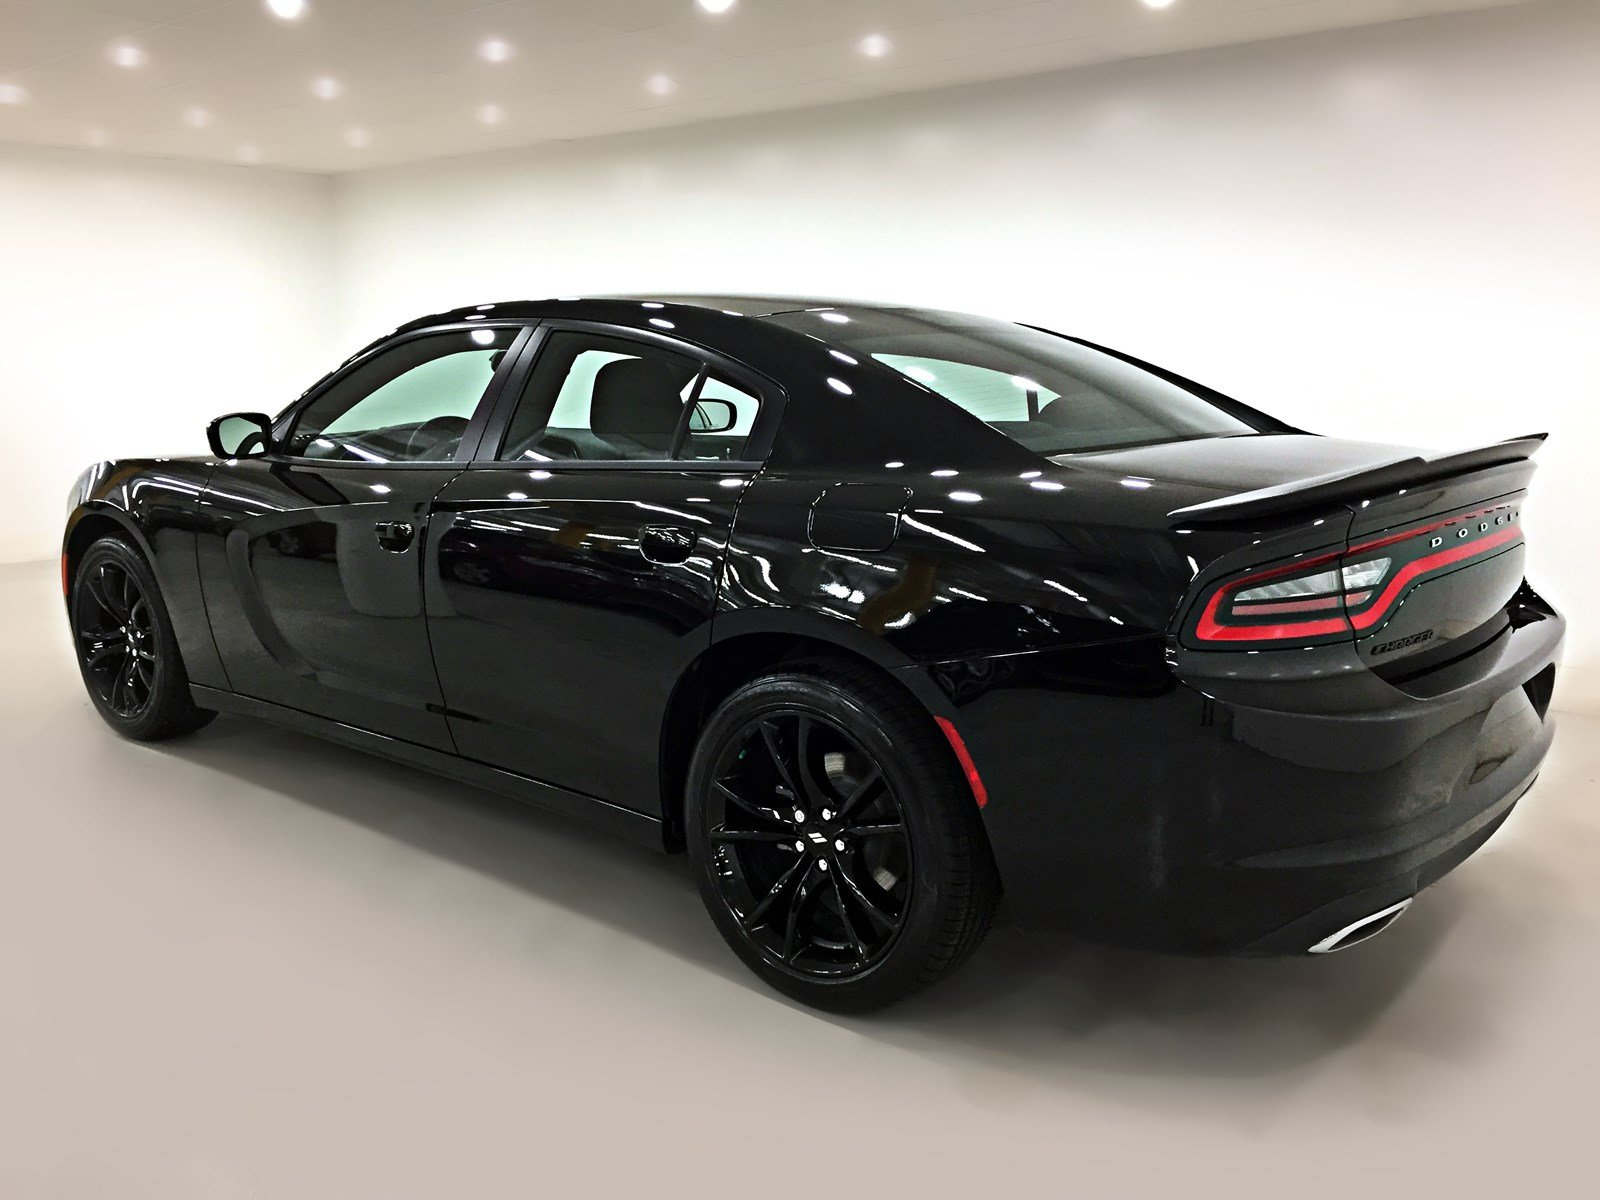 pre owned 2017 dodge charger se blacktop practically new. Black Bedroom Furniture Sets. Home Design Ideas